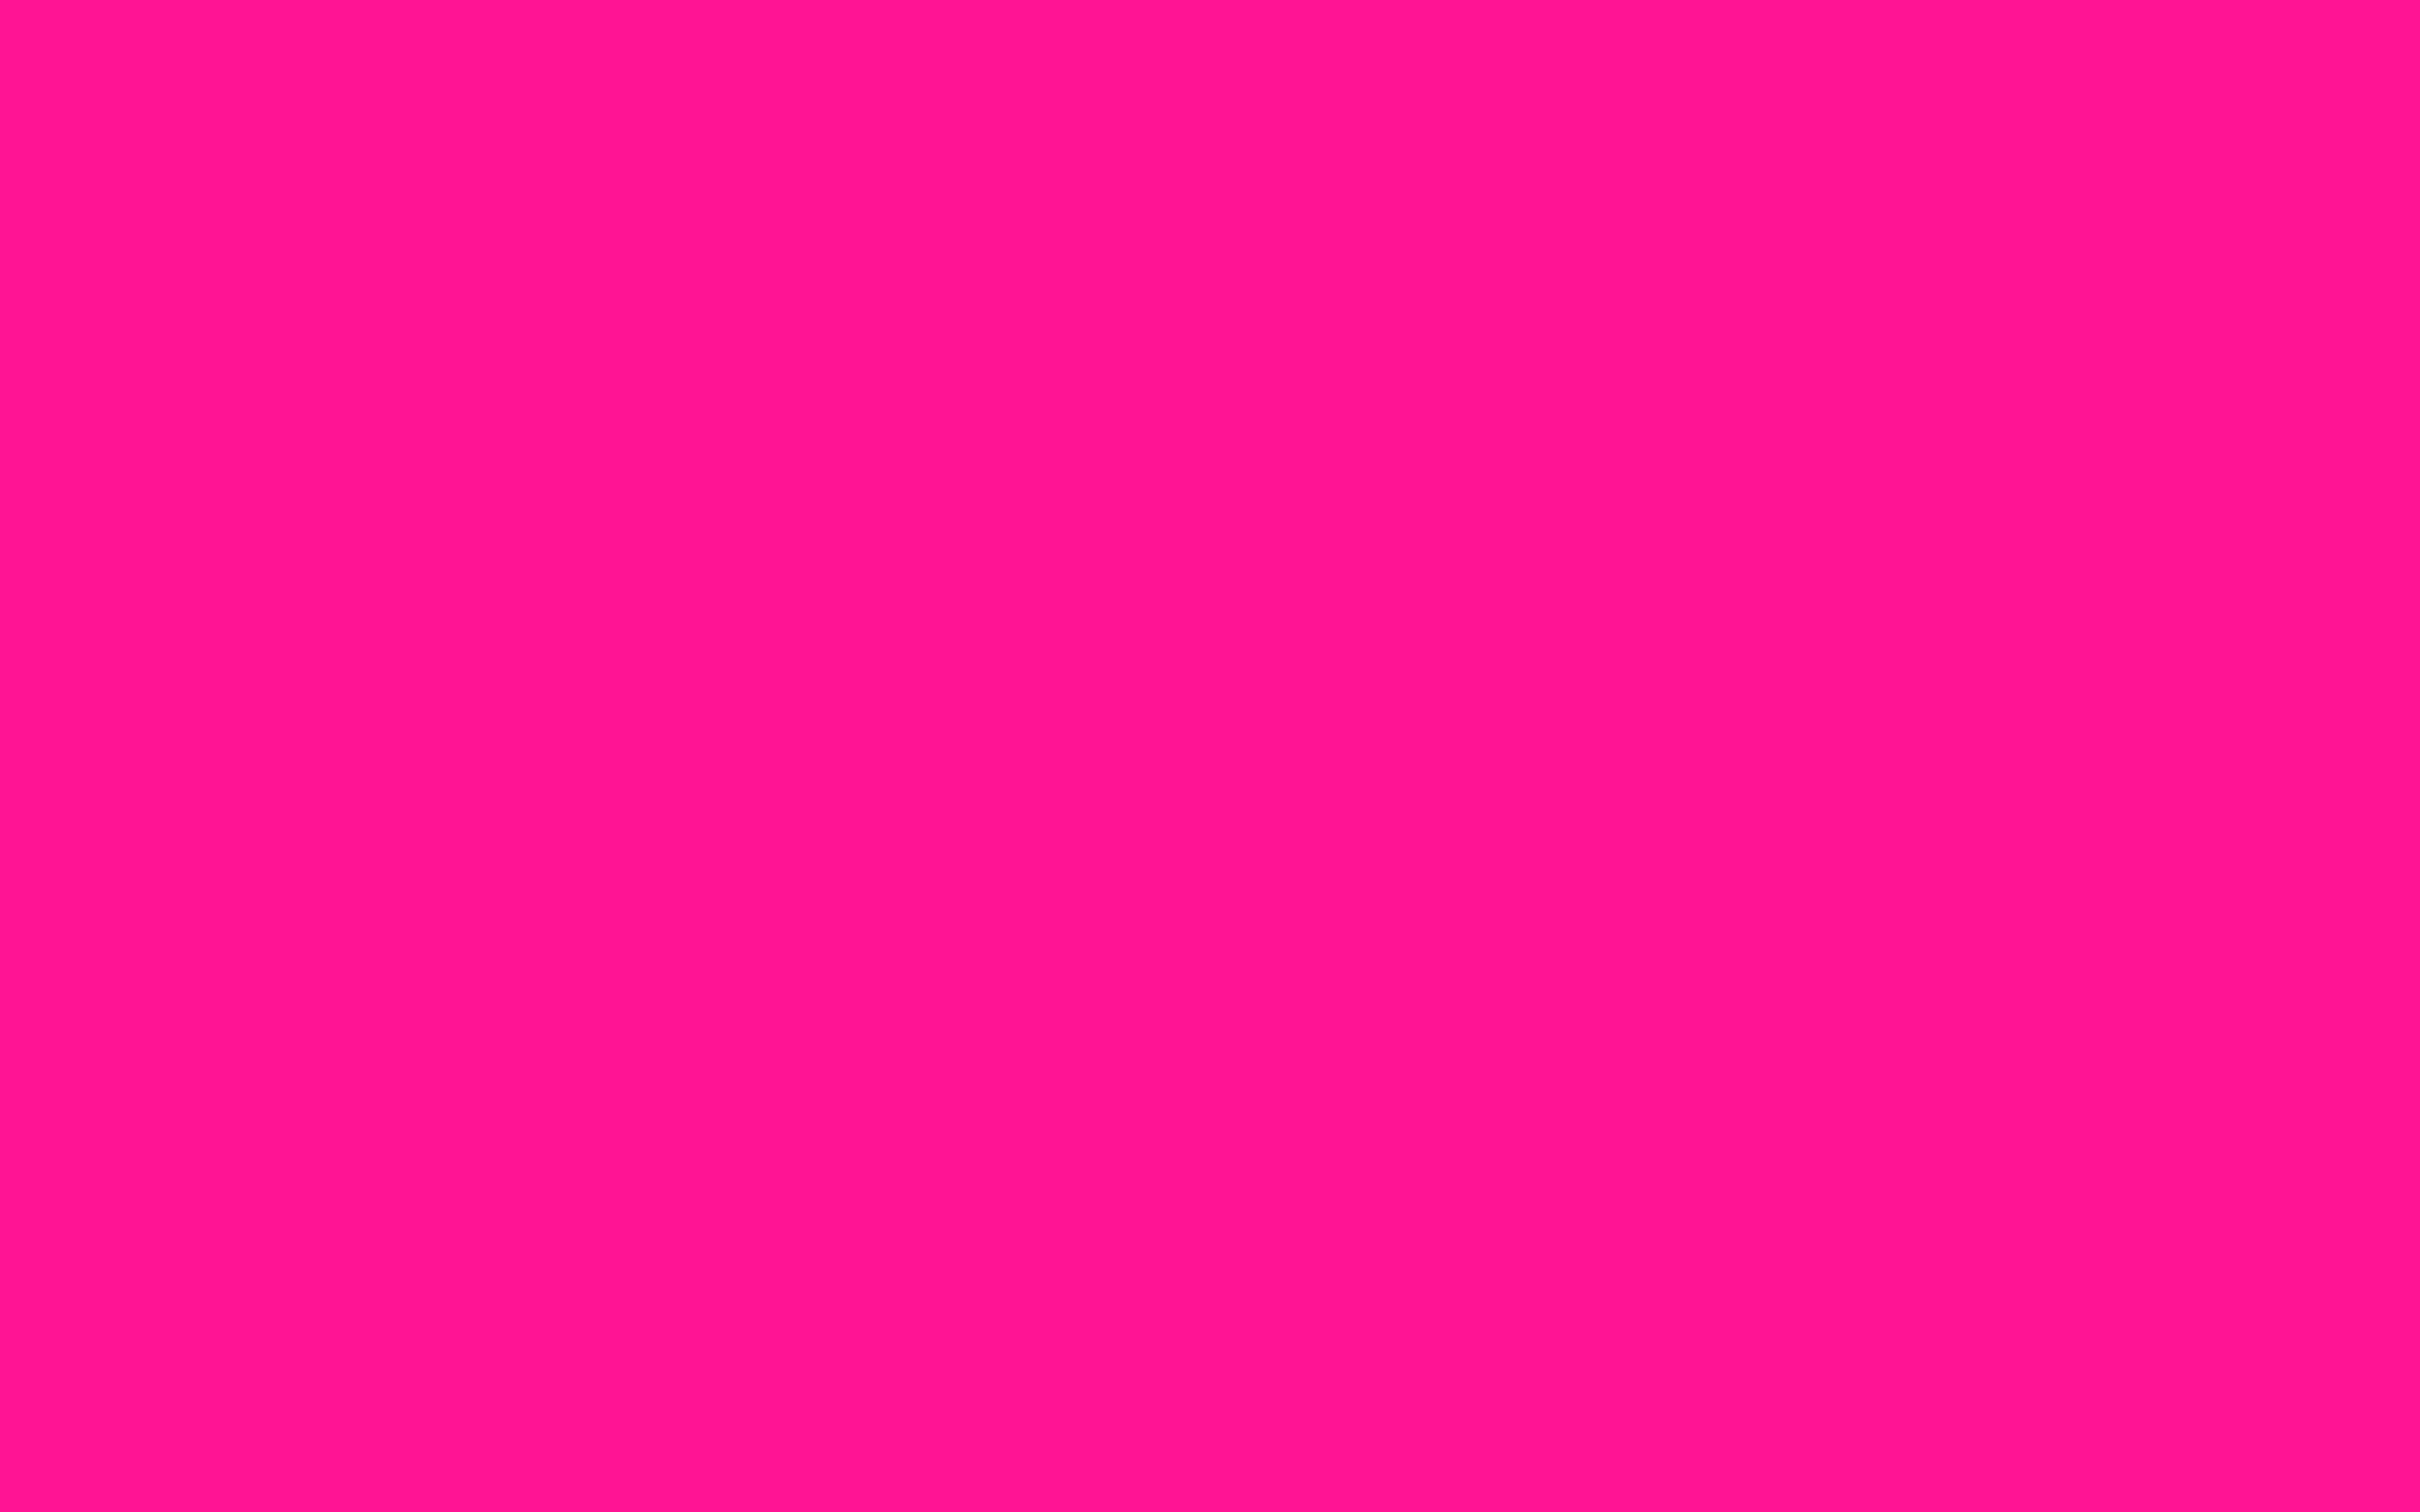 pink color - Google Search | King lear set | Pink ...